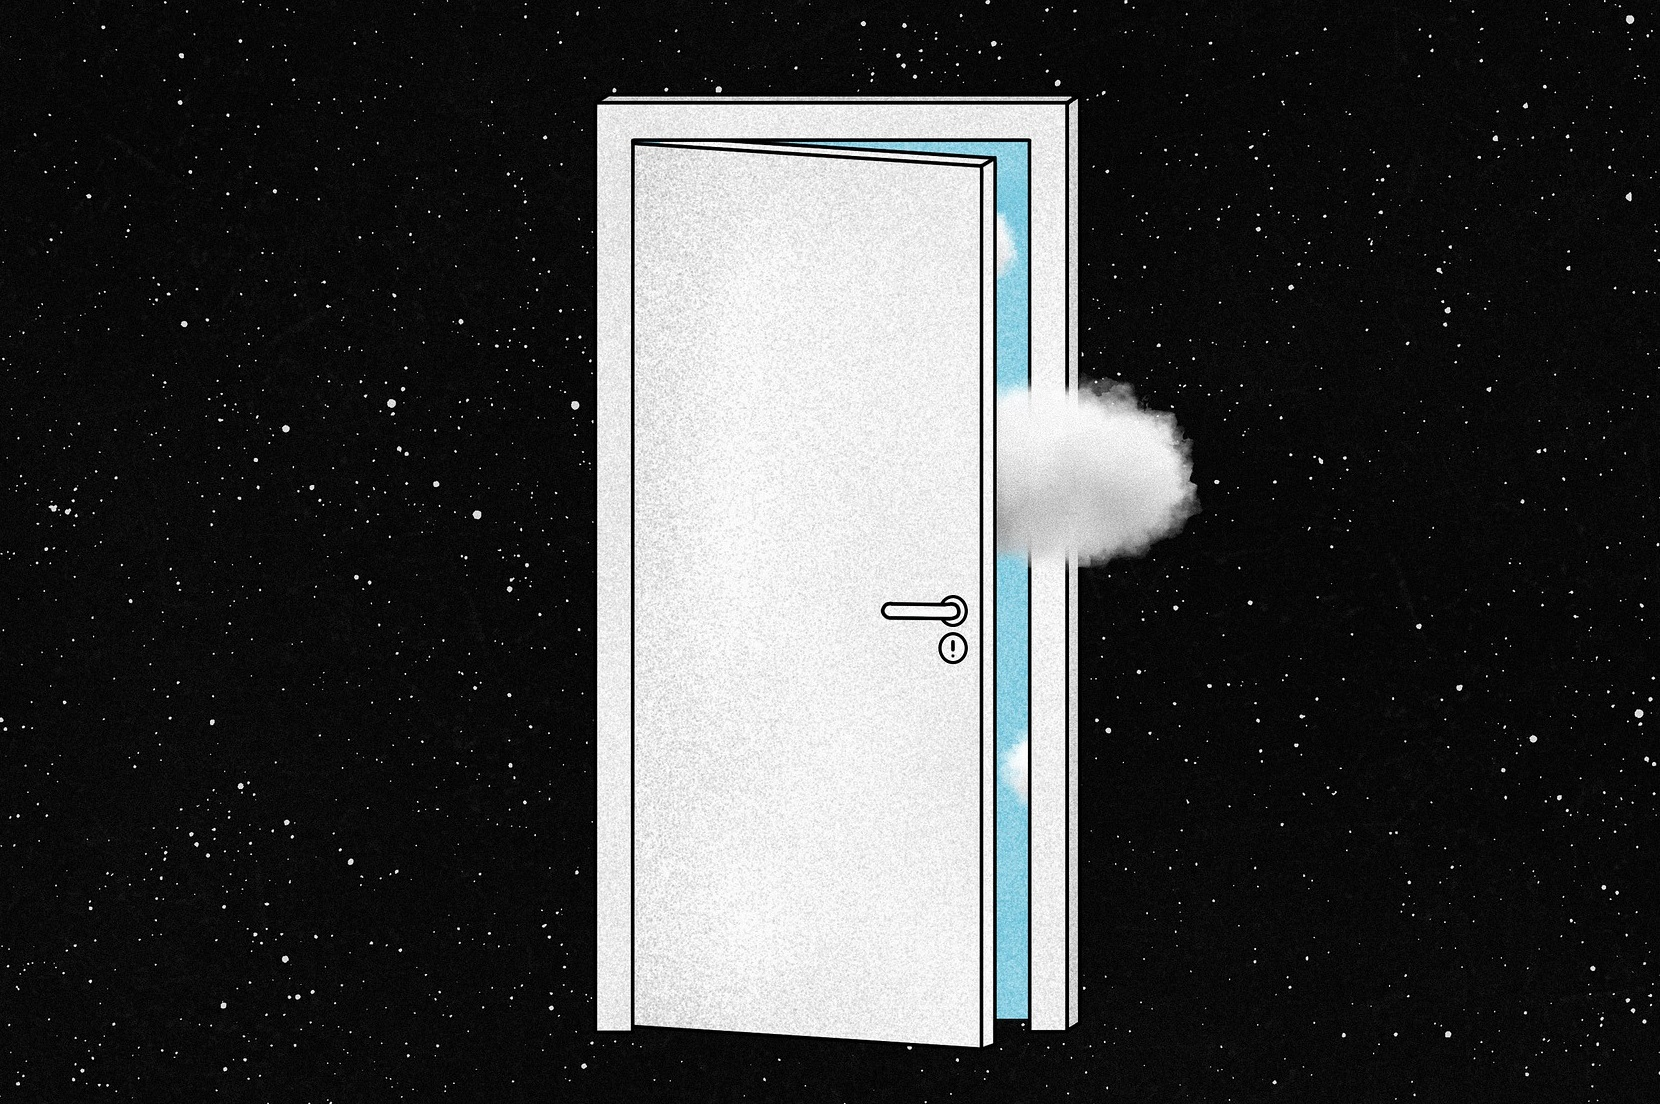 Drawing of a door opening onto a blue sky and a cloud in the middle of space